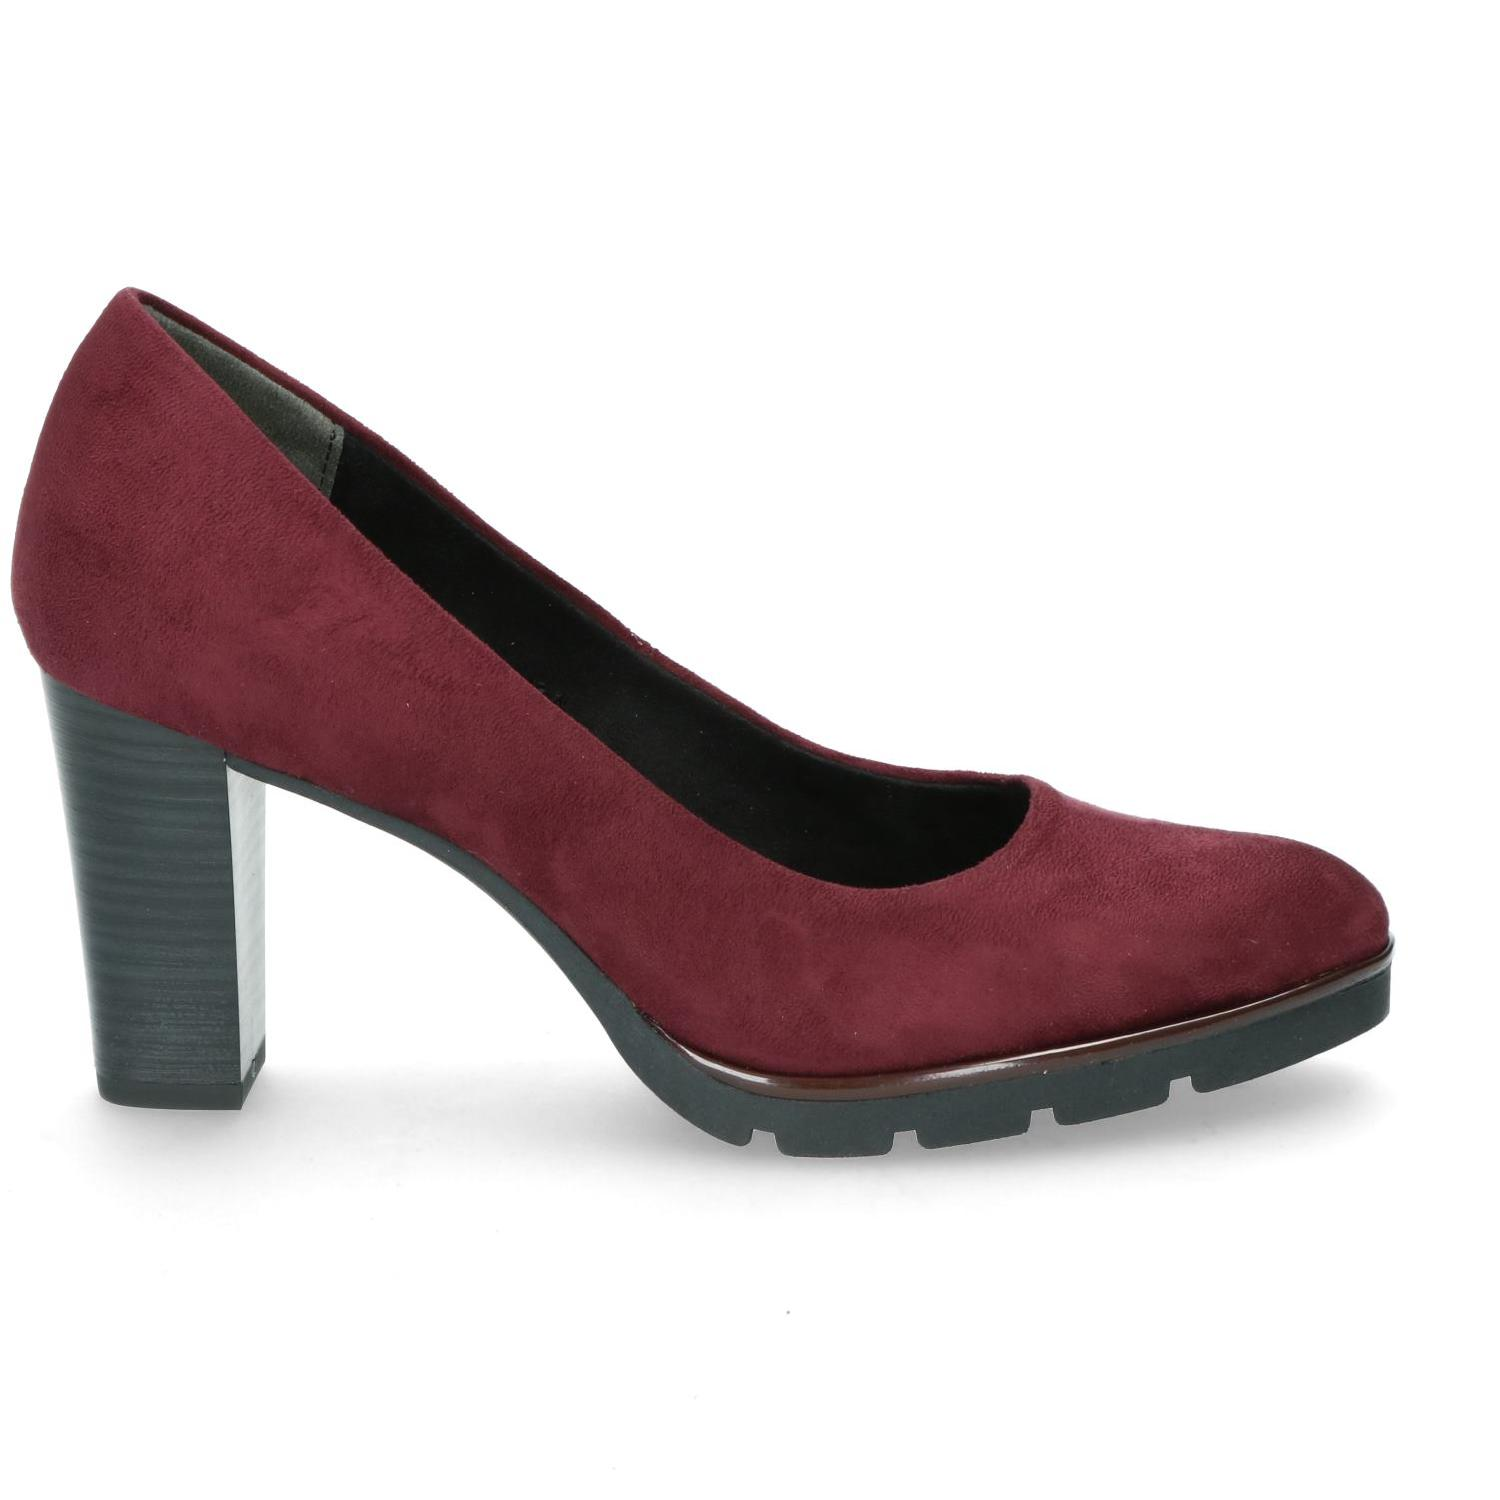 Marco Tozzi dames pumps - Bordeaux